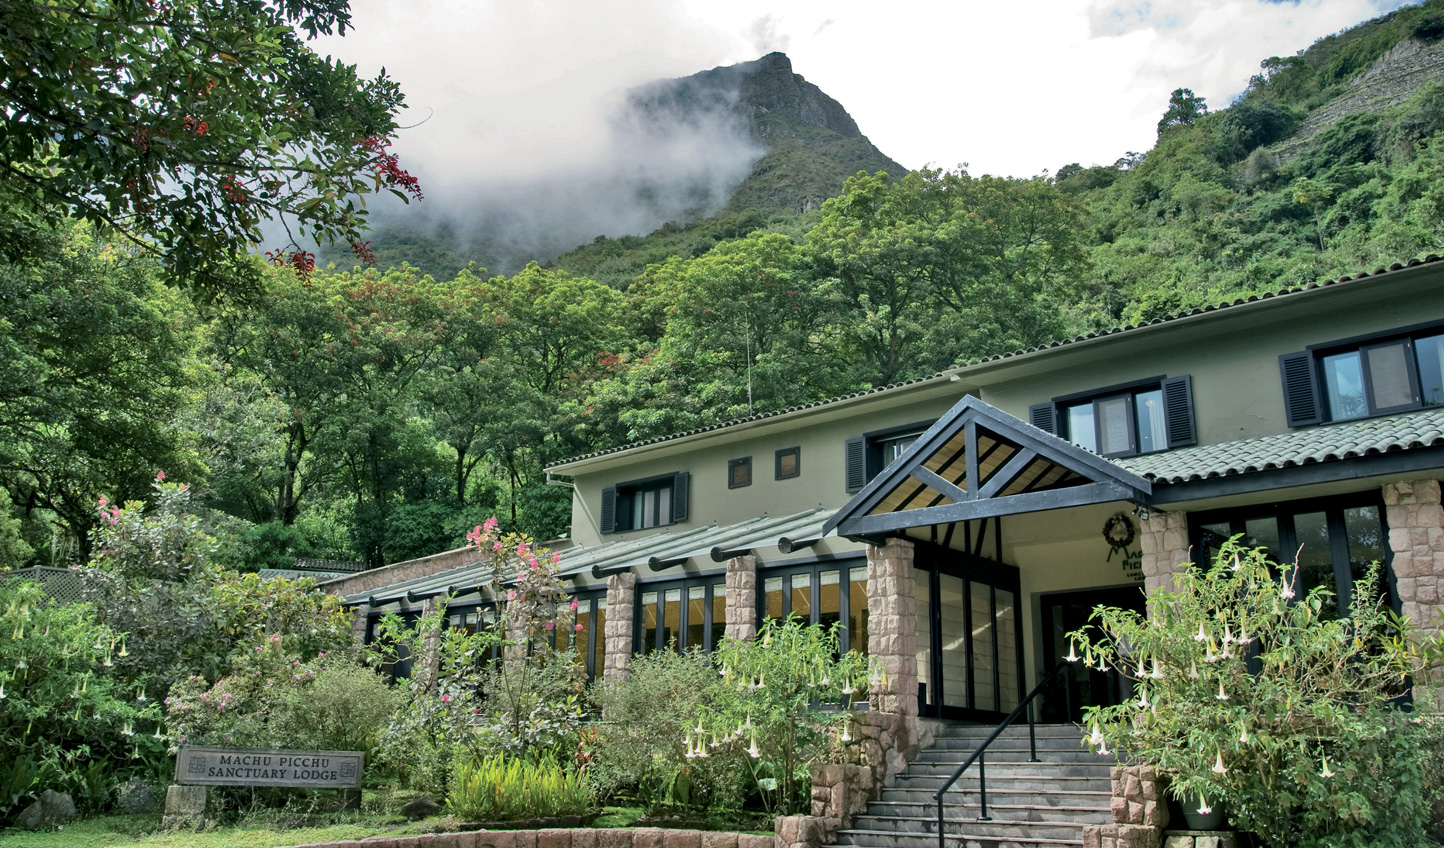 Belmond Sanctuary Lodge in the clouds